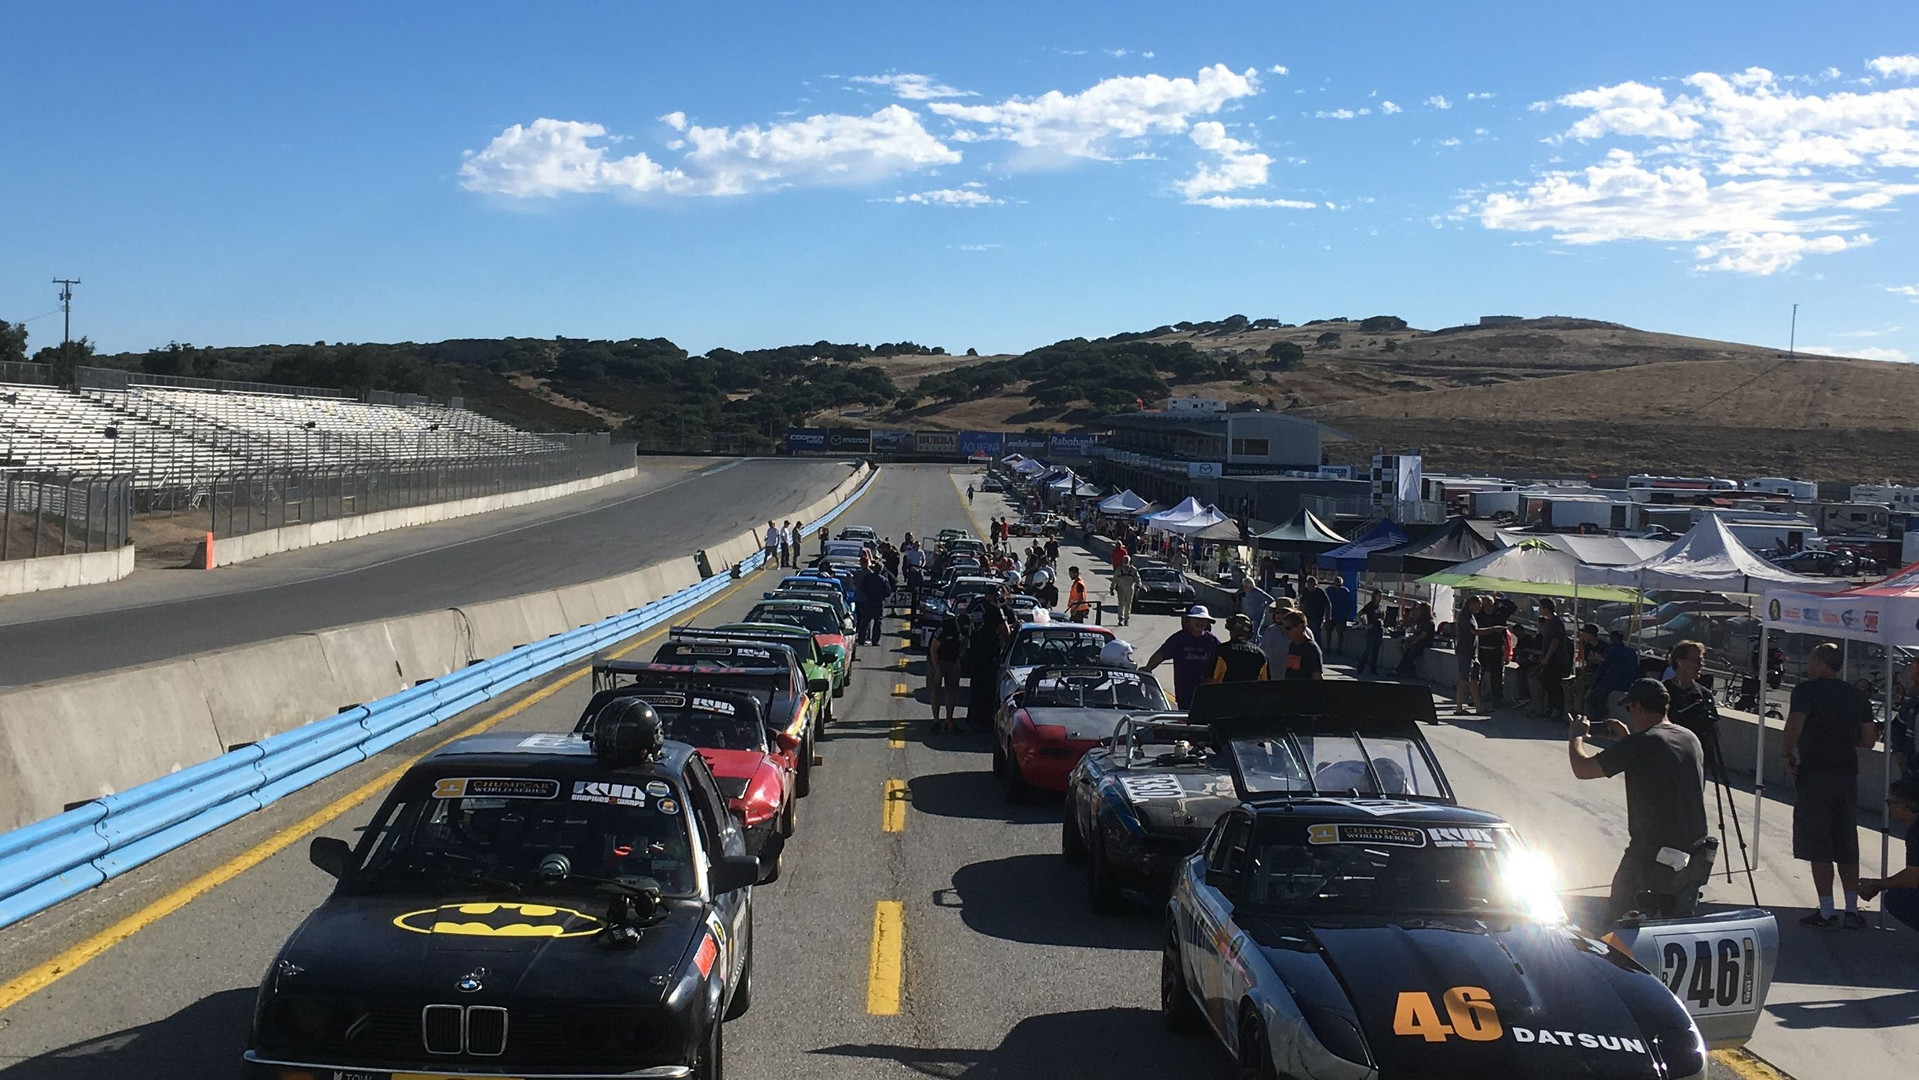 The Grid at Laguna Seca